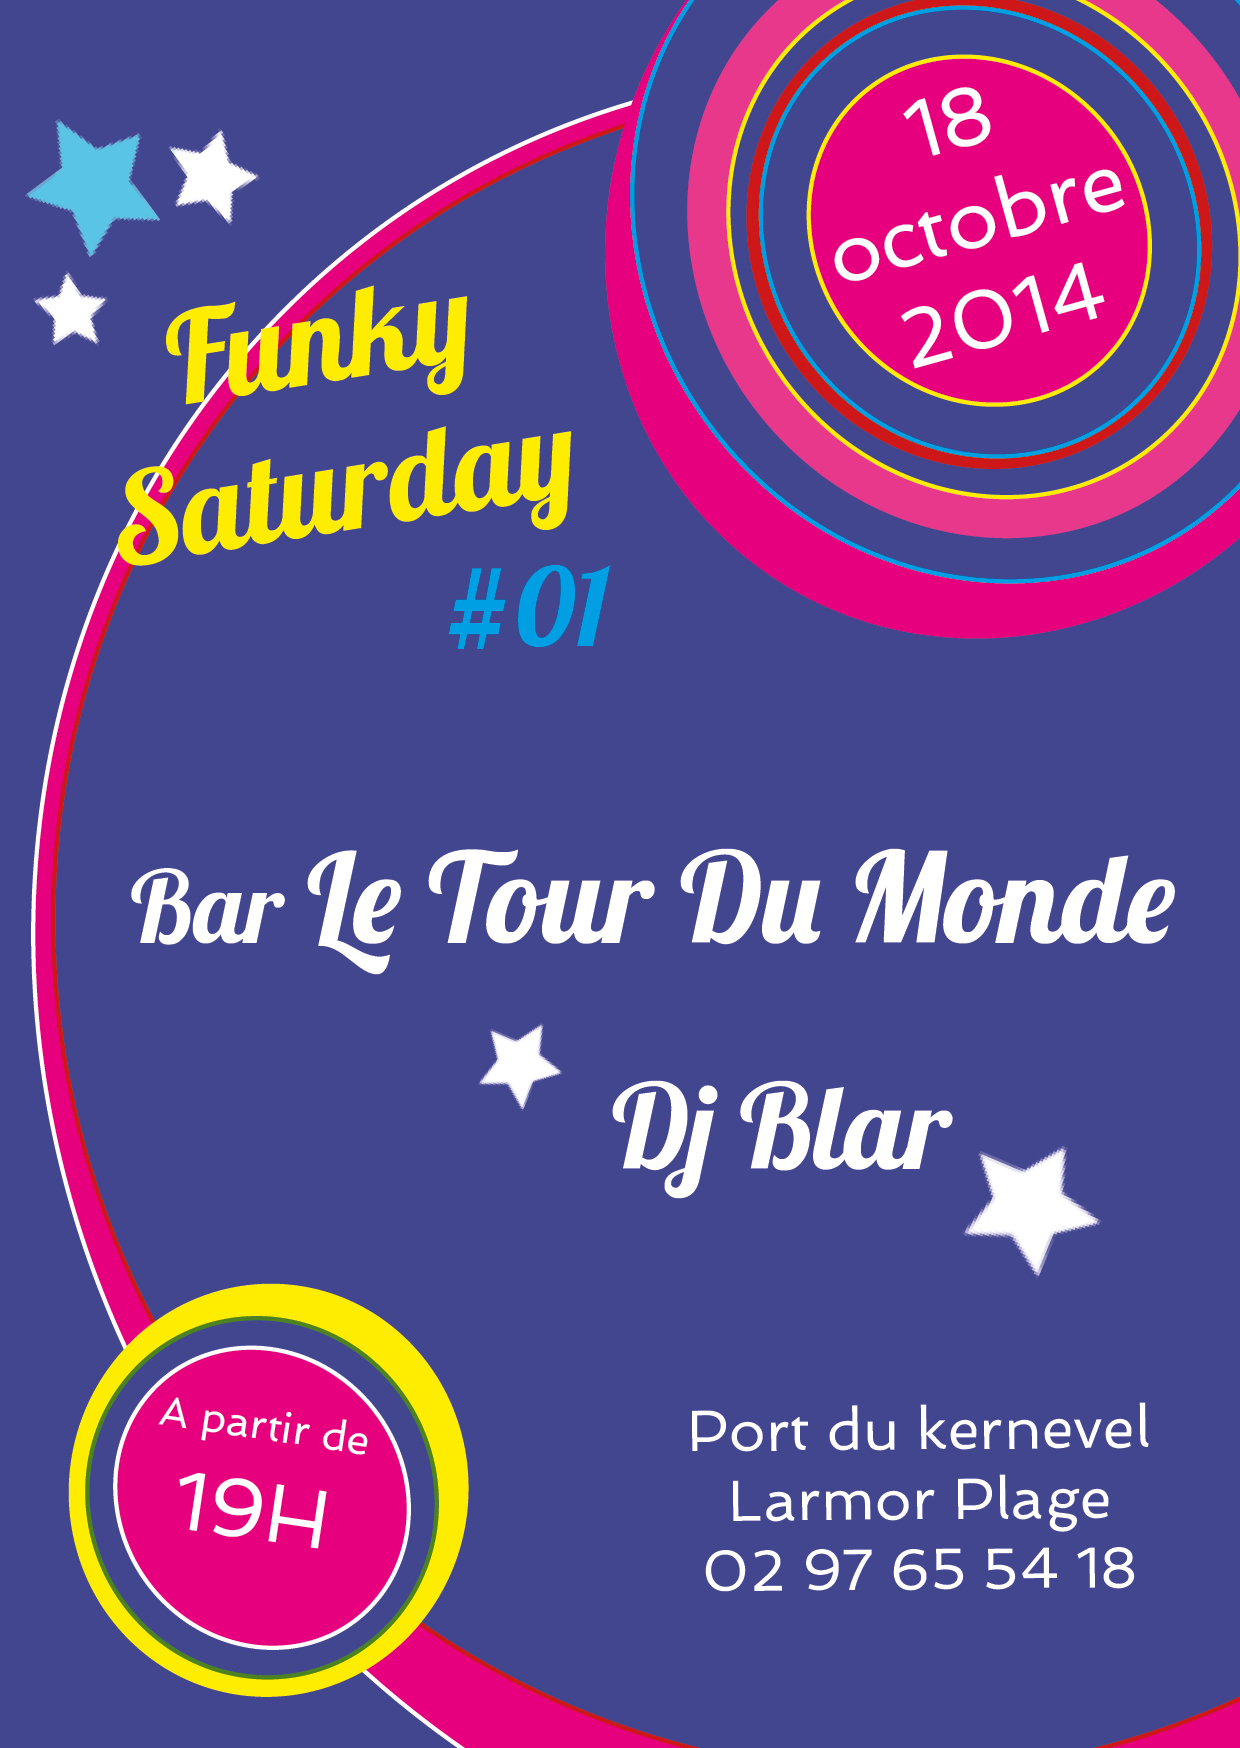 Flyer Tour Du Monde_DJBlar_18 oct 14